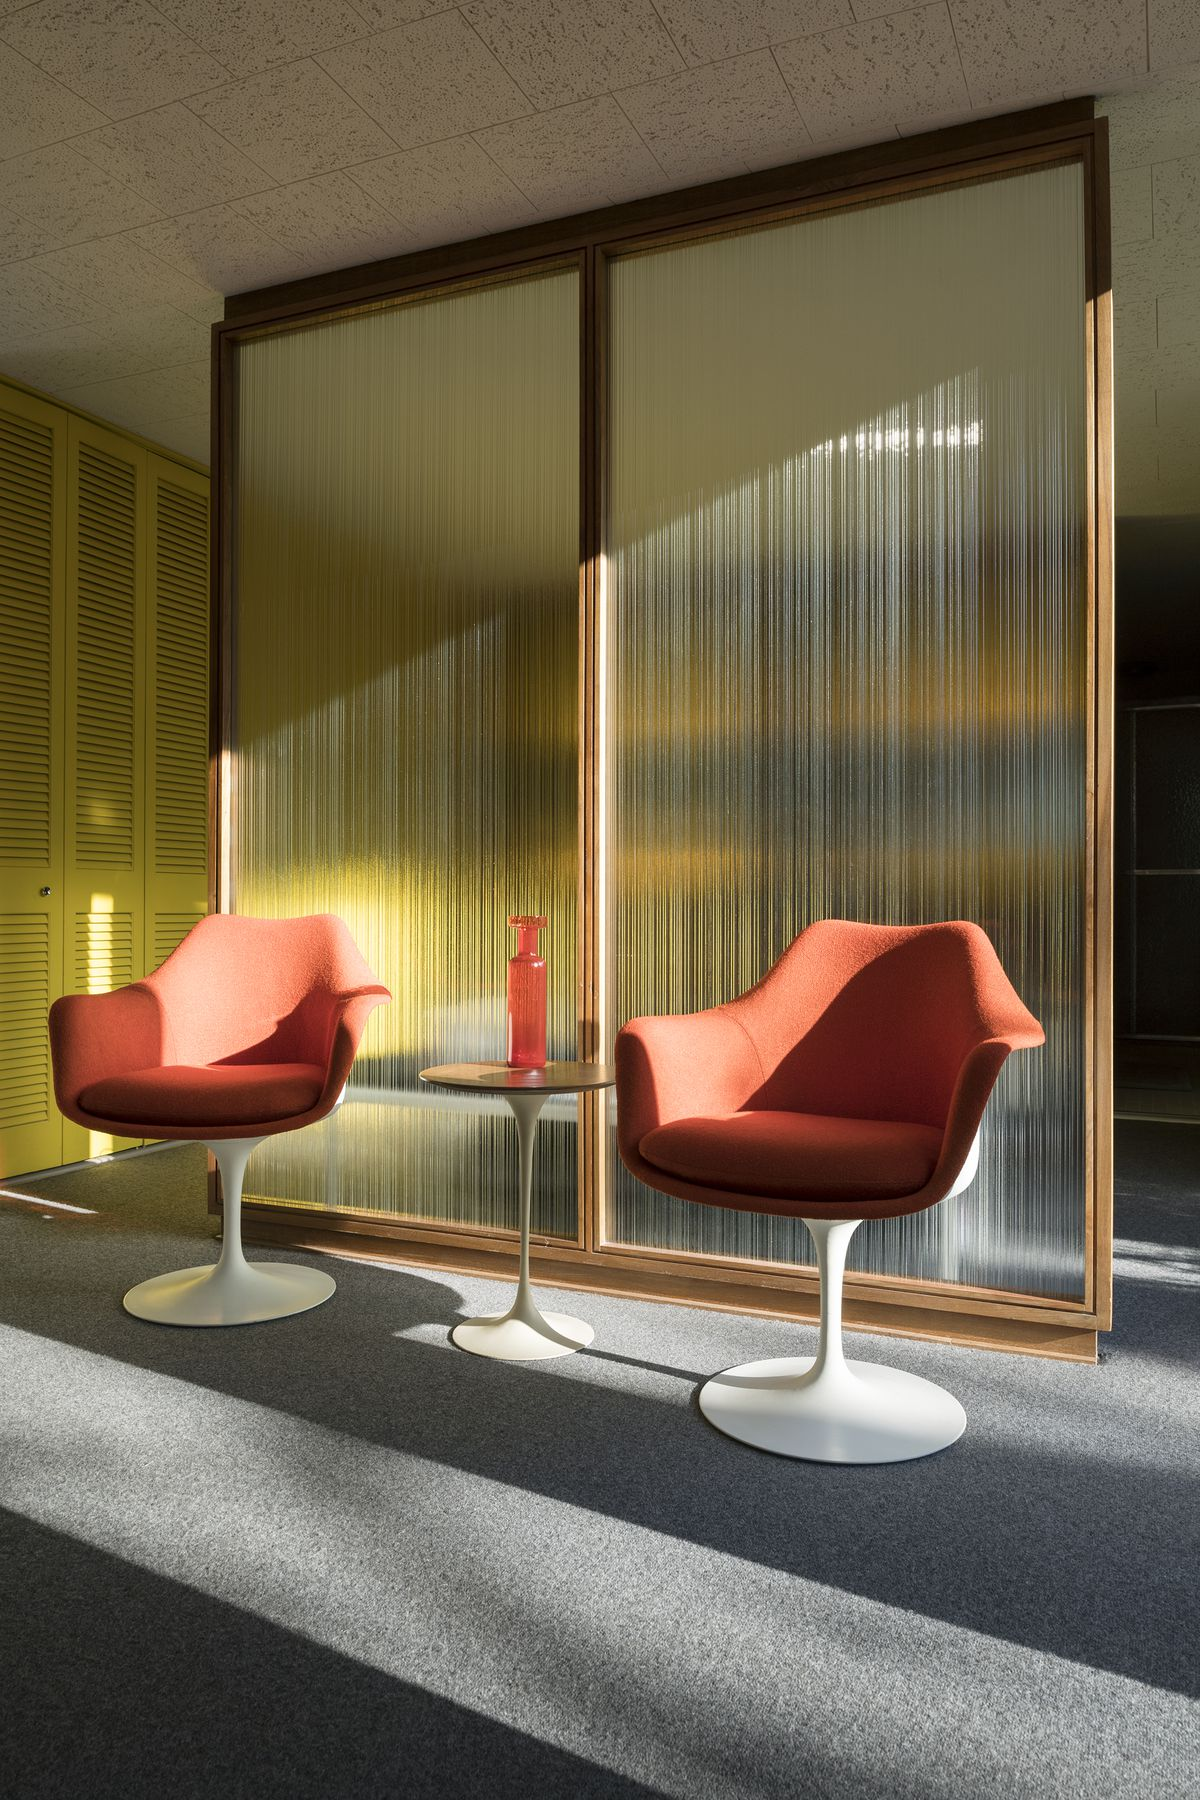 Two chairs sit in front of a rippled glass screen.